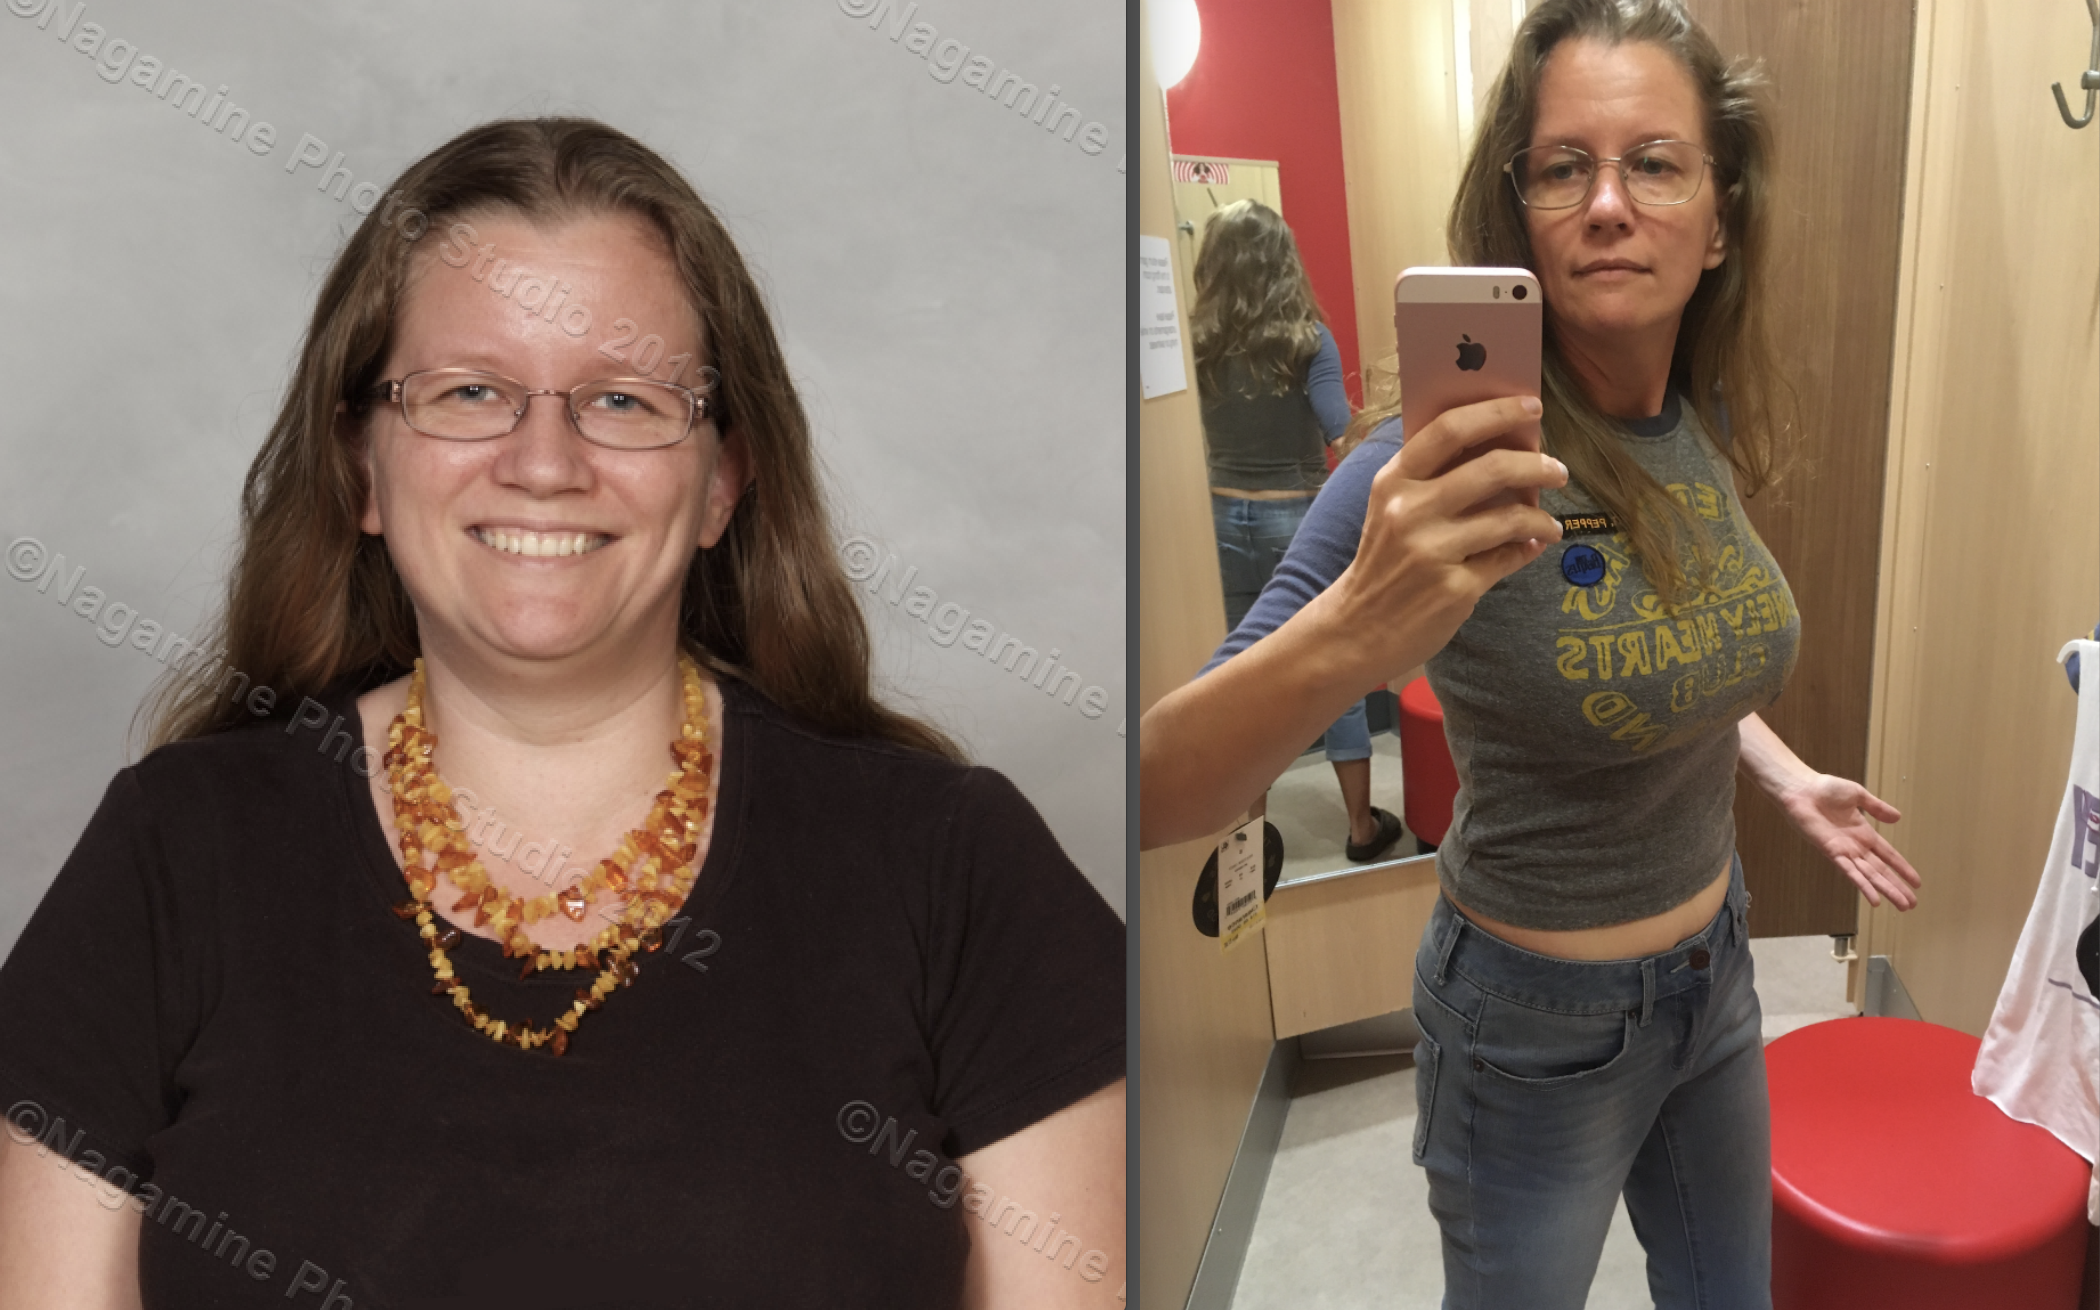 65 lbs Fat Loss Before and After 5'4 Female 185 lbs to 120 lbs